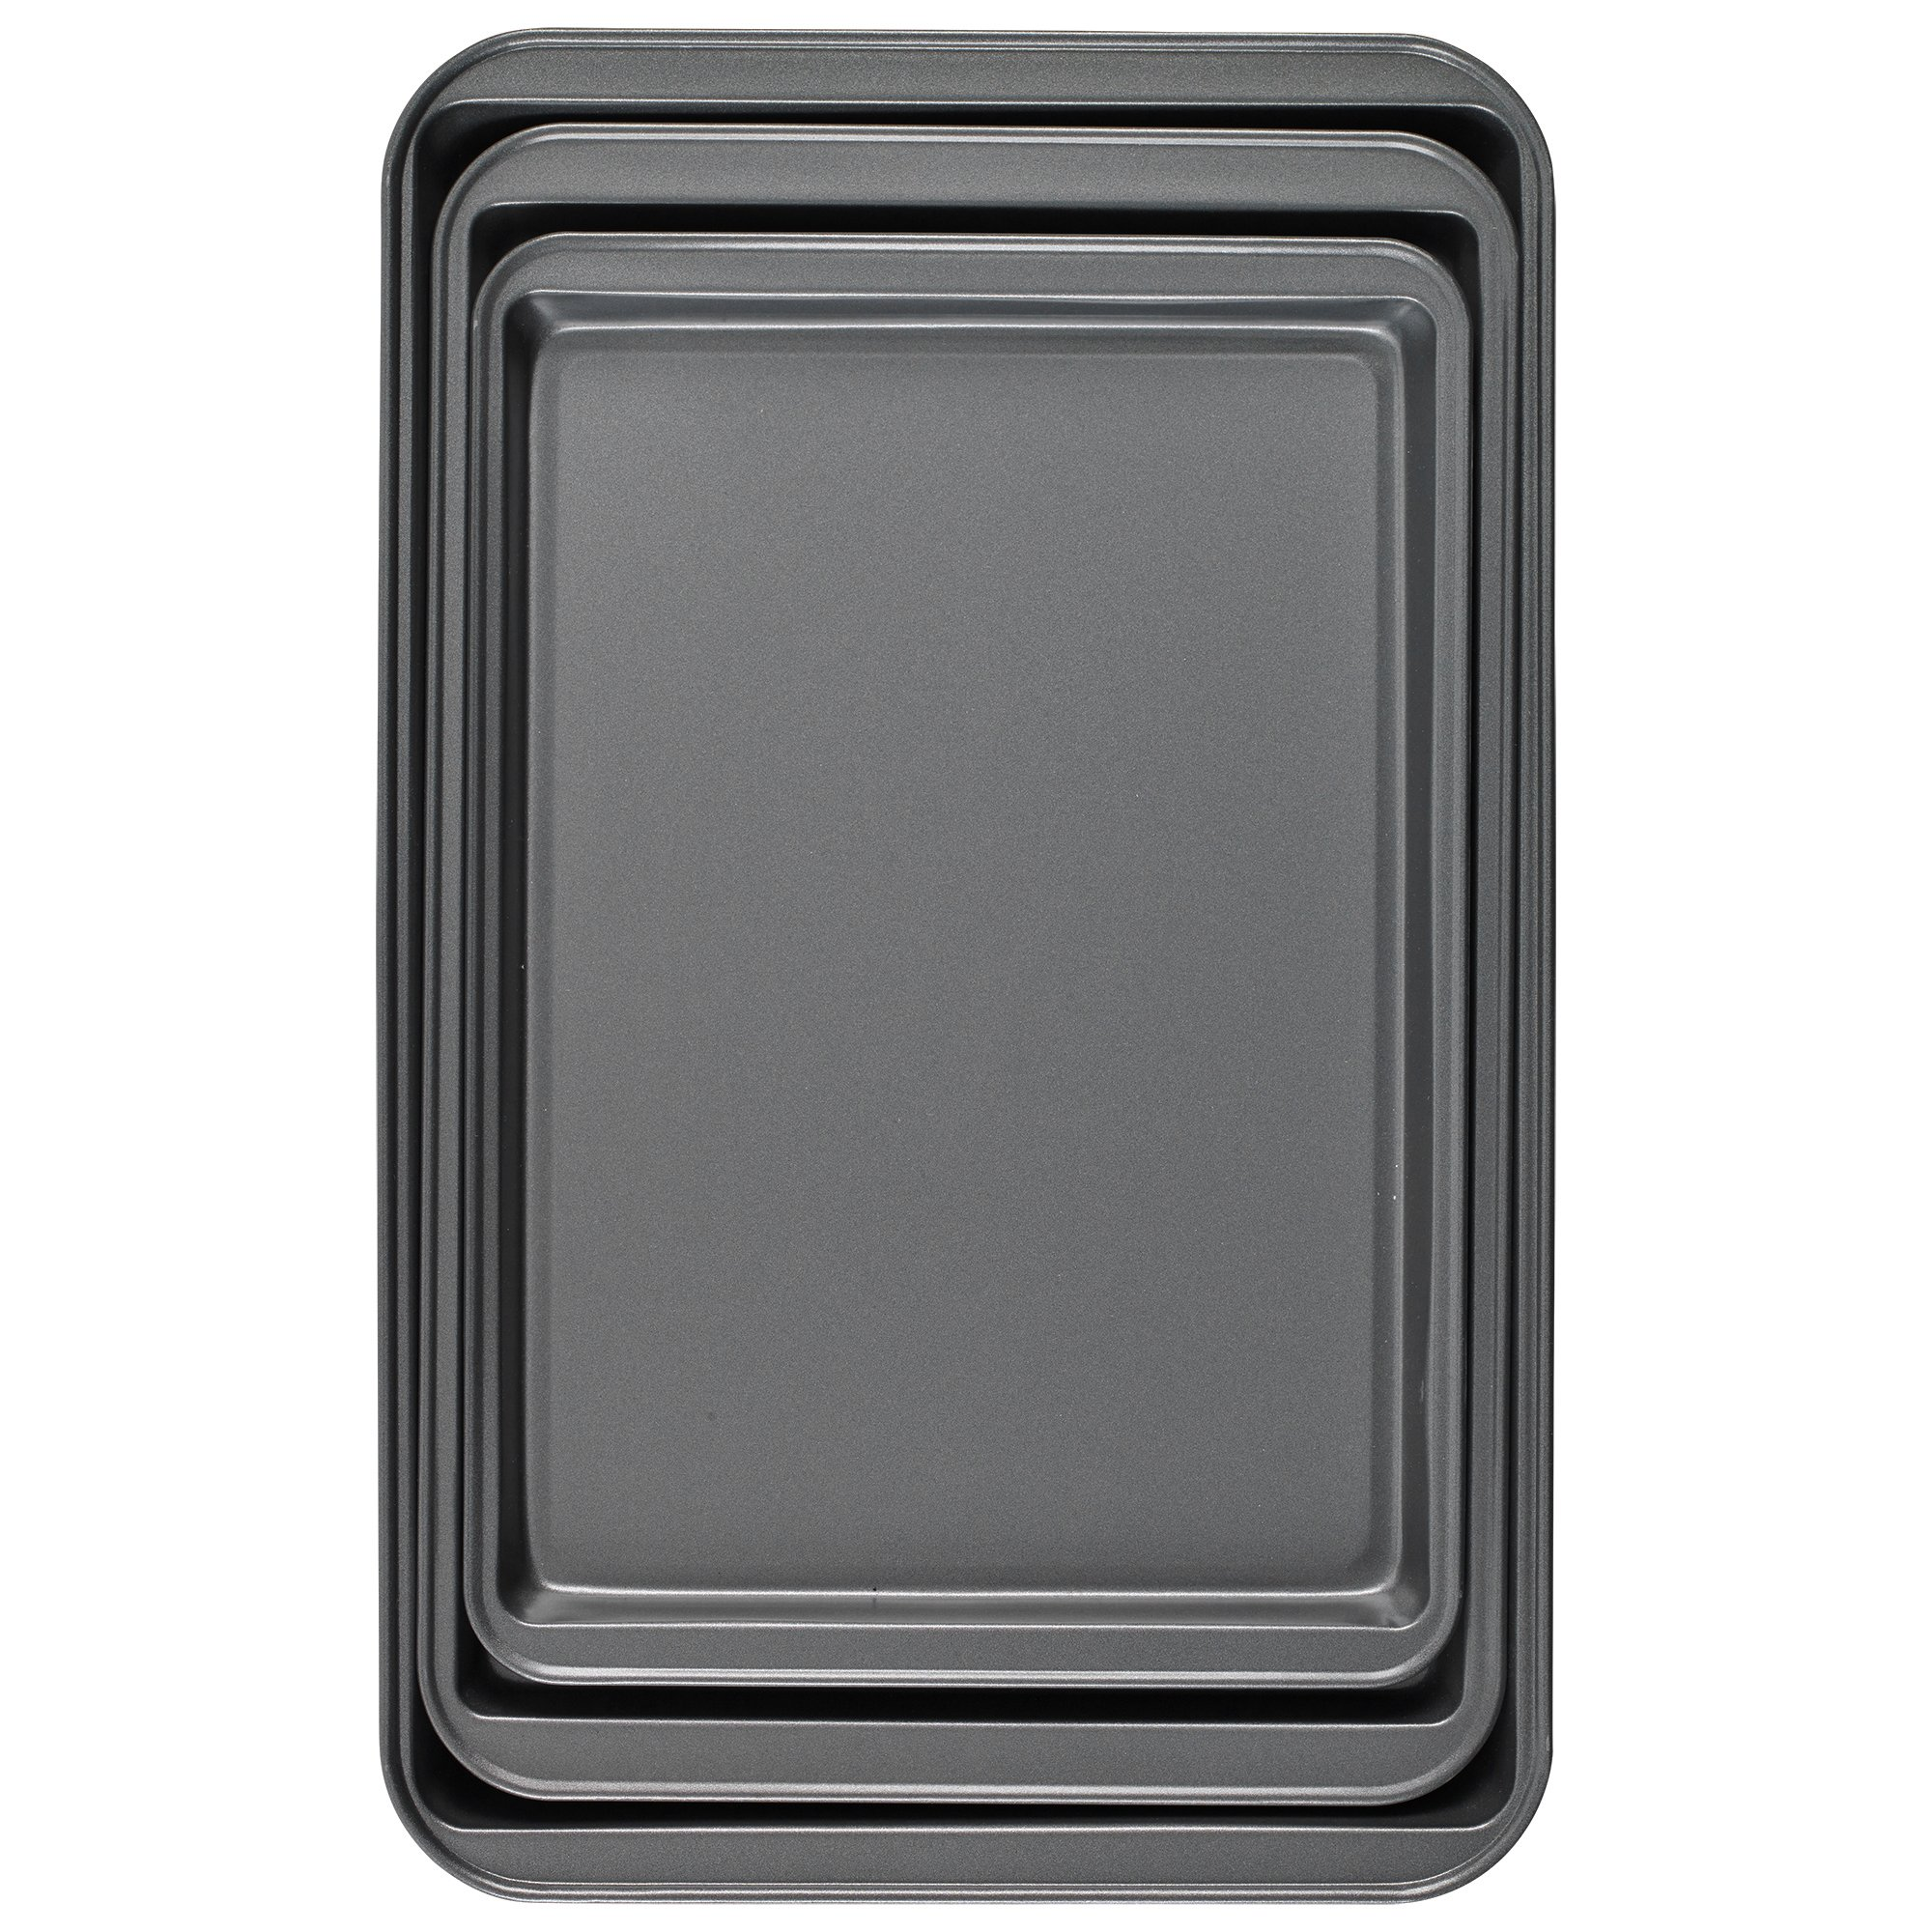 Good Cook Set Of 3 Non-Stick Cookie Sheet by Good Cook (Image #3)